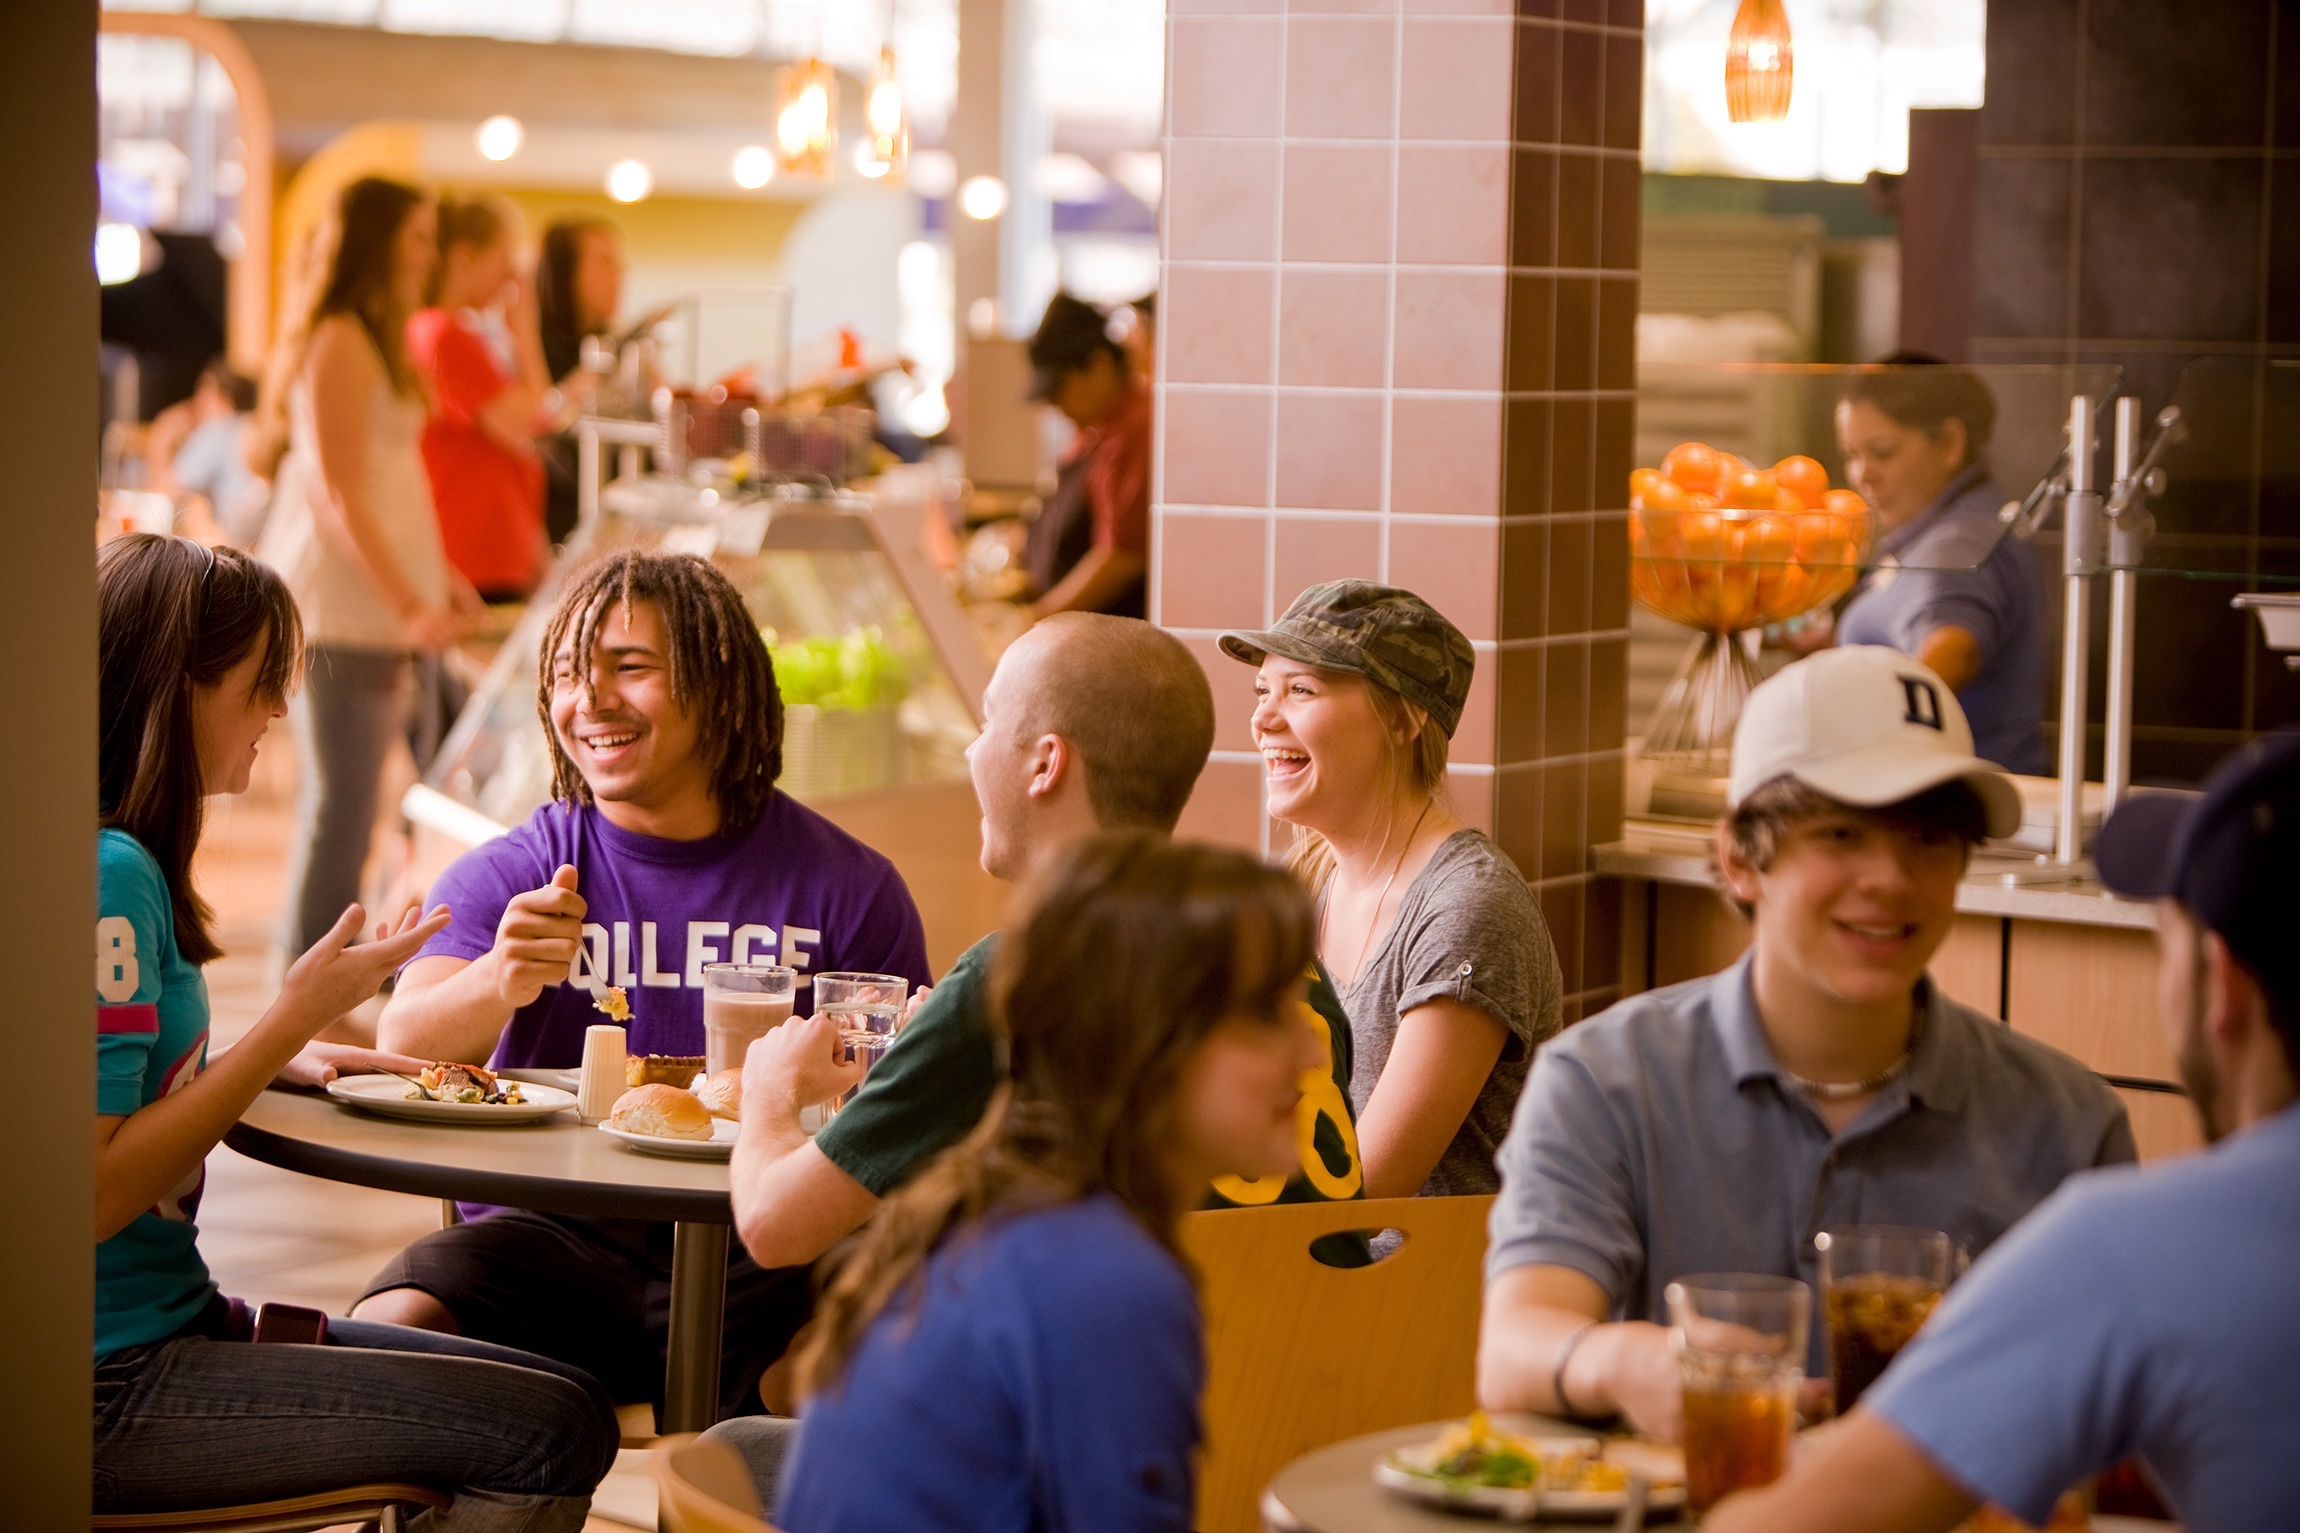 Students in a dining hall